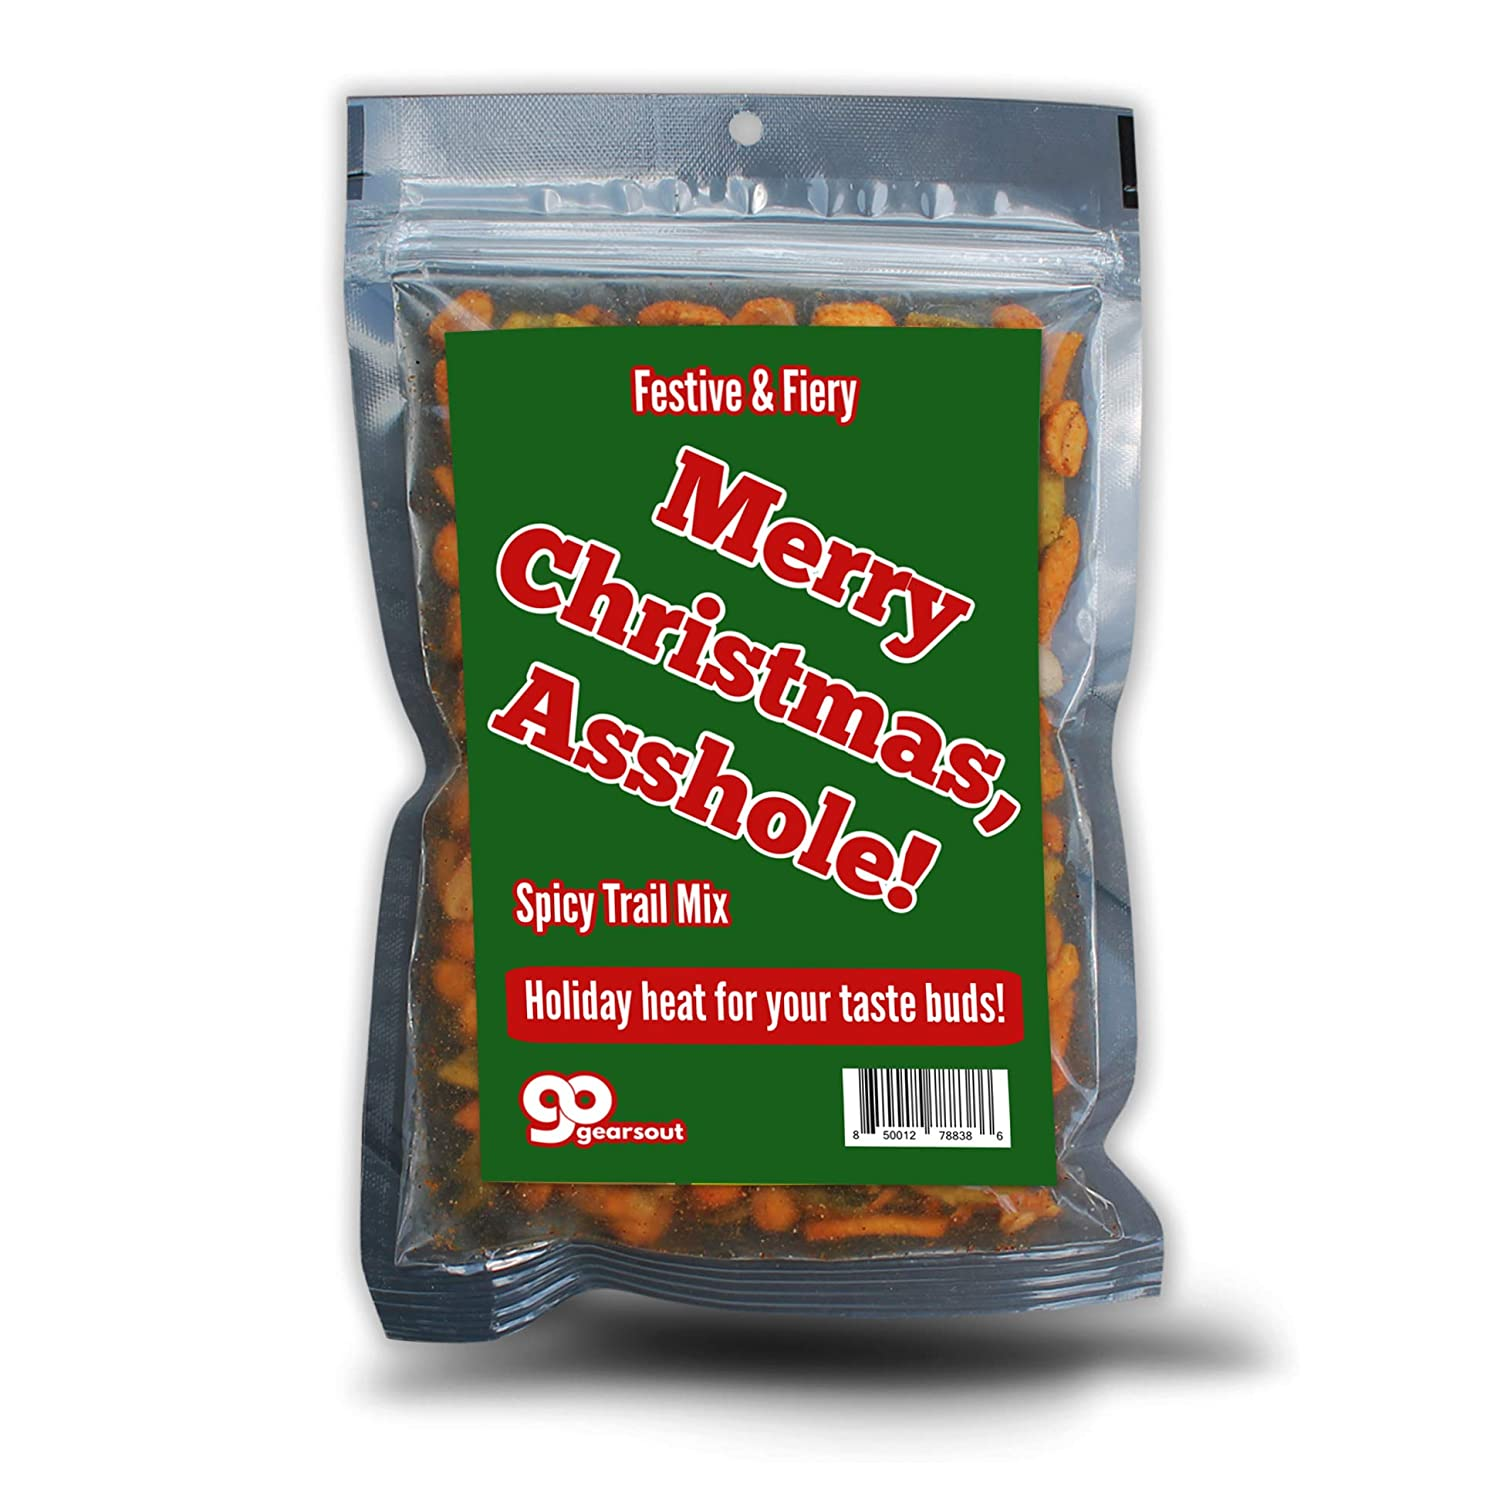 Merry Christmas Asshole Spicy Trail Mix - Holiday Food Gifts for Adults - Premium Trail Mix, Funny Stocking Stuffer, Made in the USA